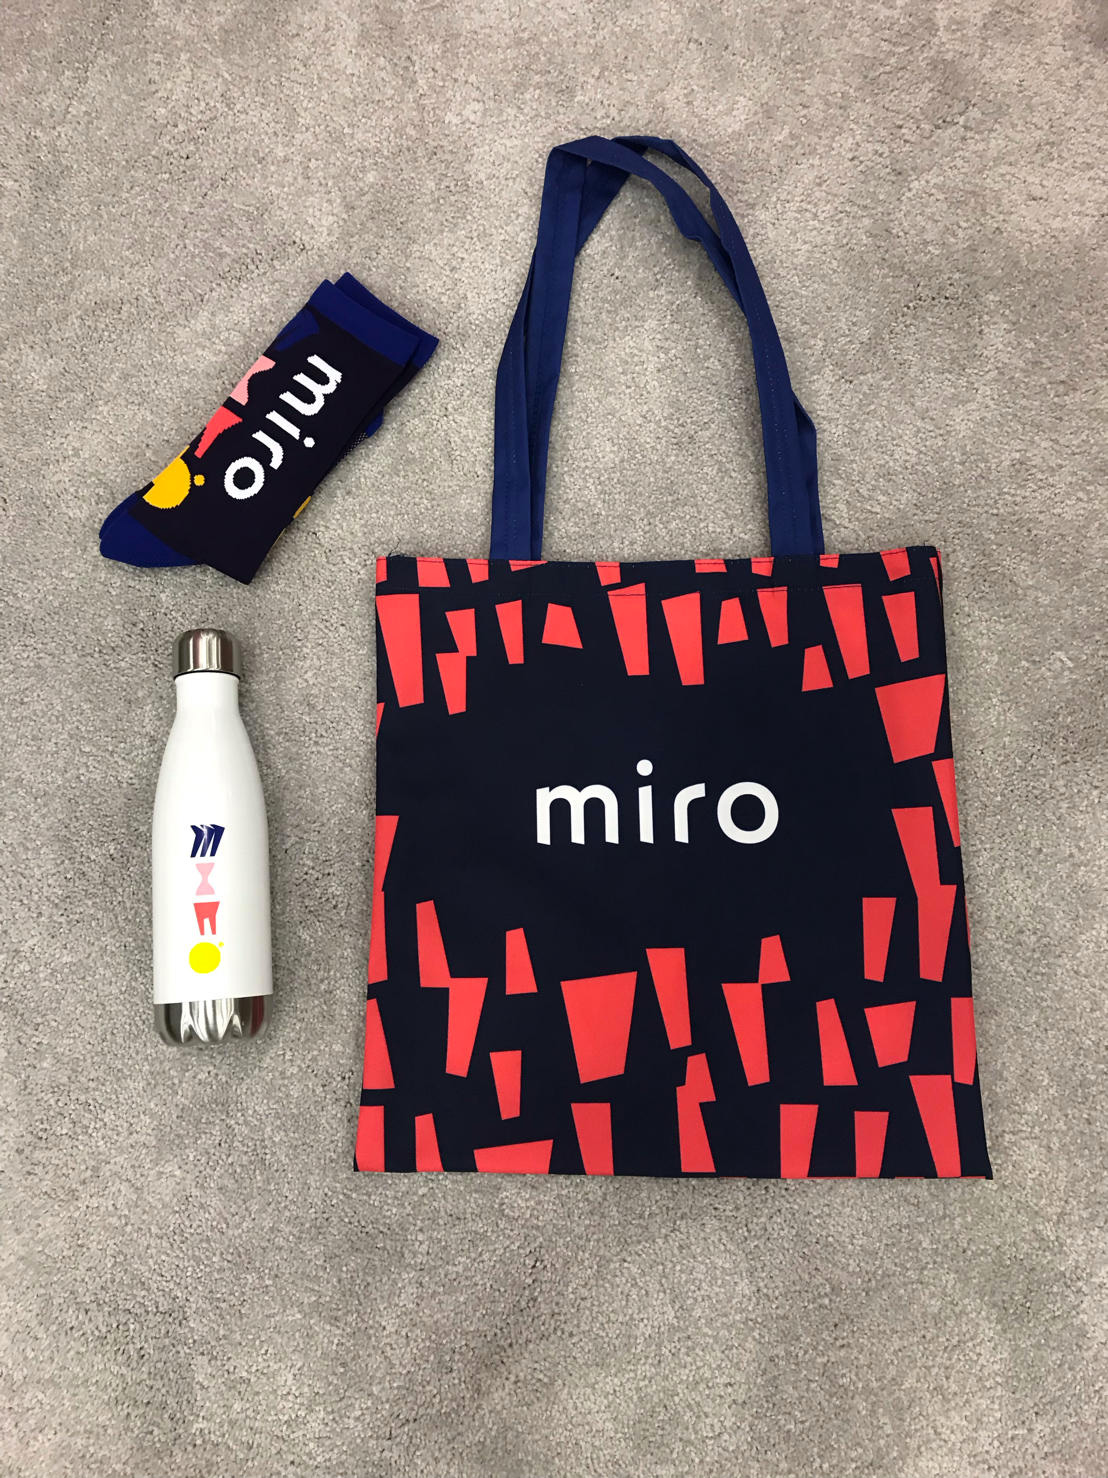 New Logo and Identity for Miro by Vruchtvlees